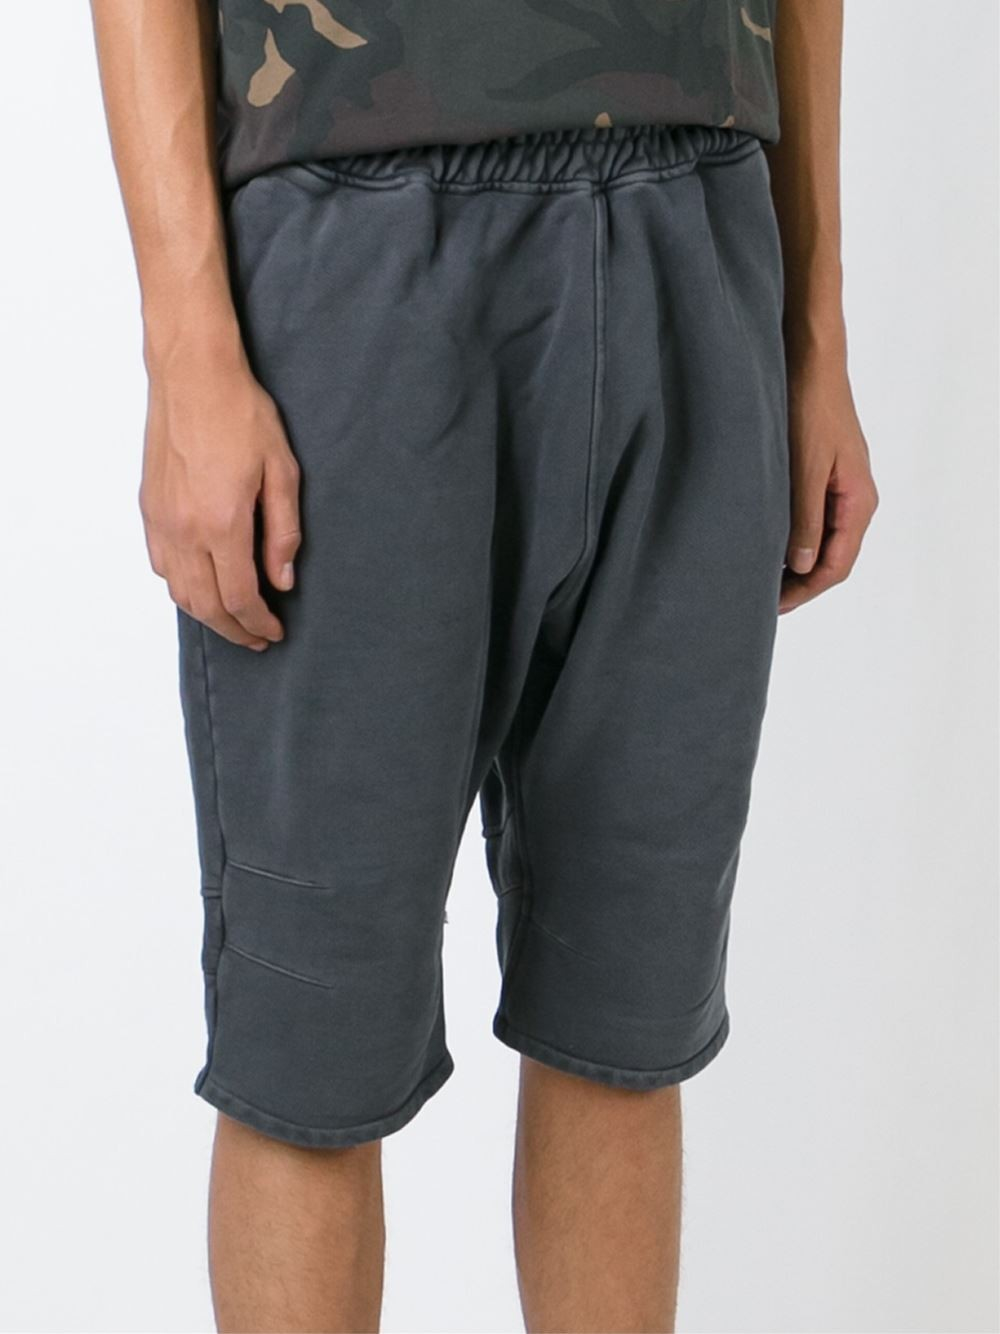 yeezy adidas originals by kanye west track shorts in black